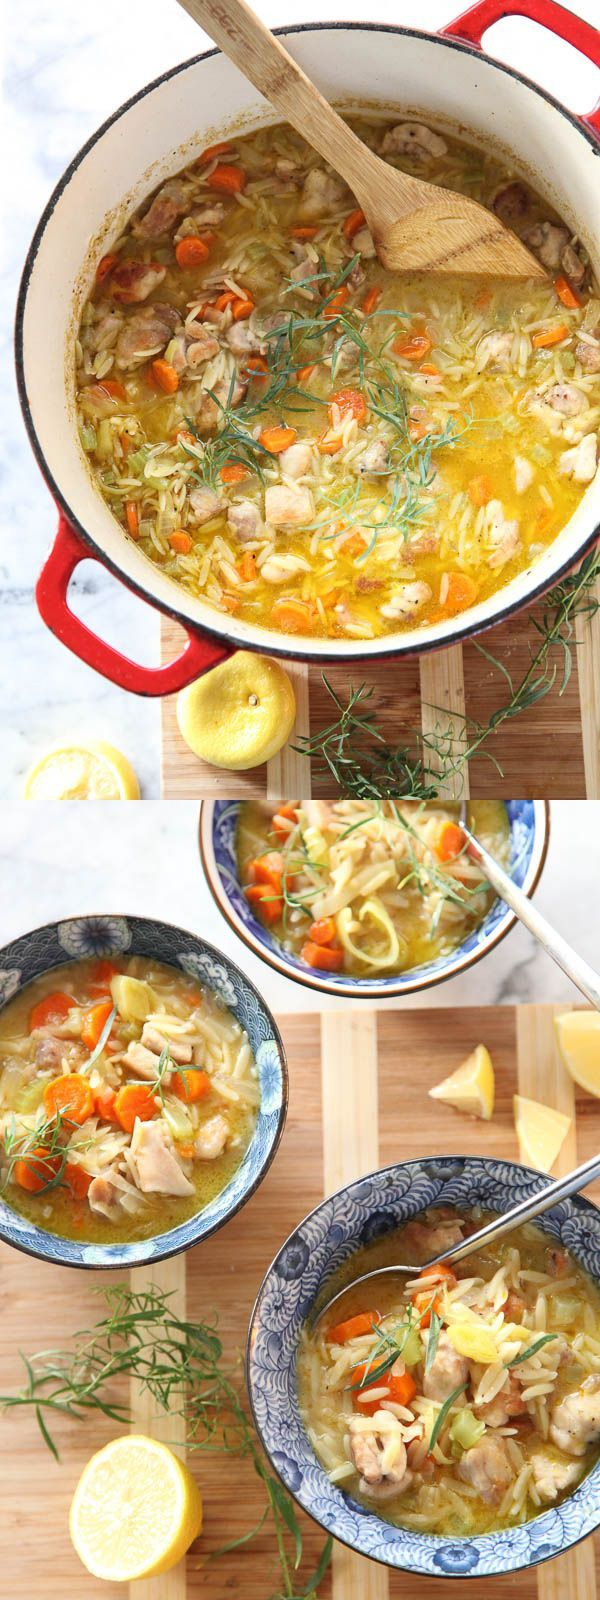 This is a true one-pot meal packed with veggies, chicken and lemony orzo pasta. No wonder it's one of the most popular recipes on foodiecrush.com #soup #orzo